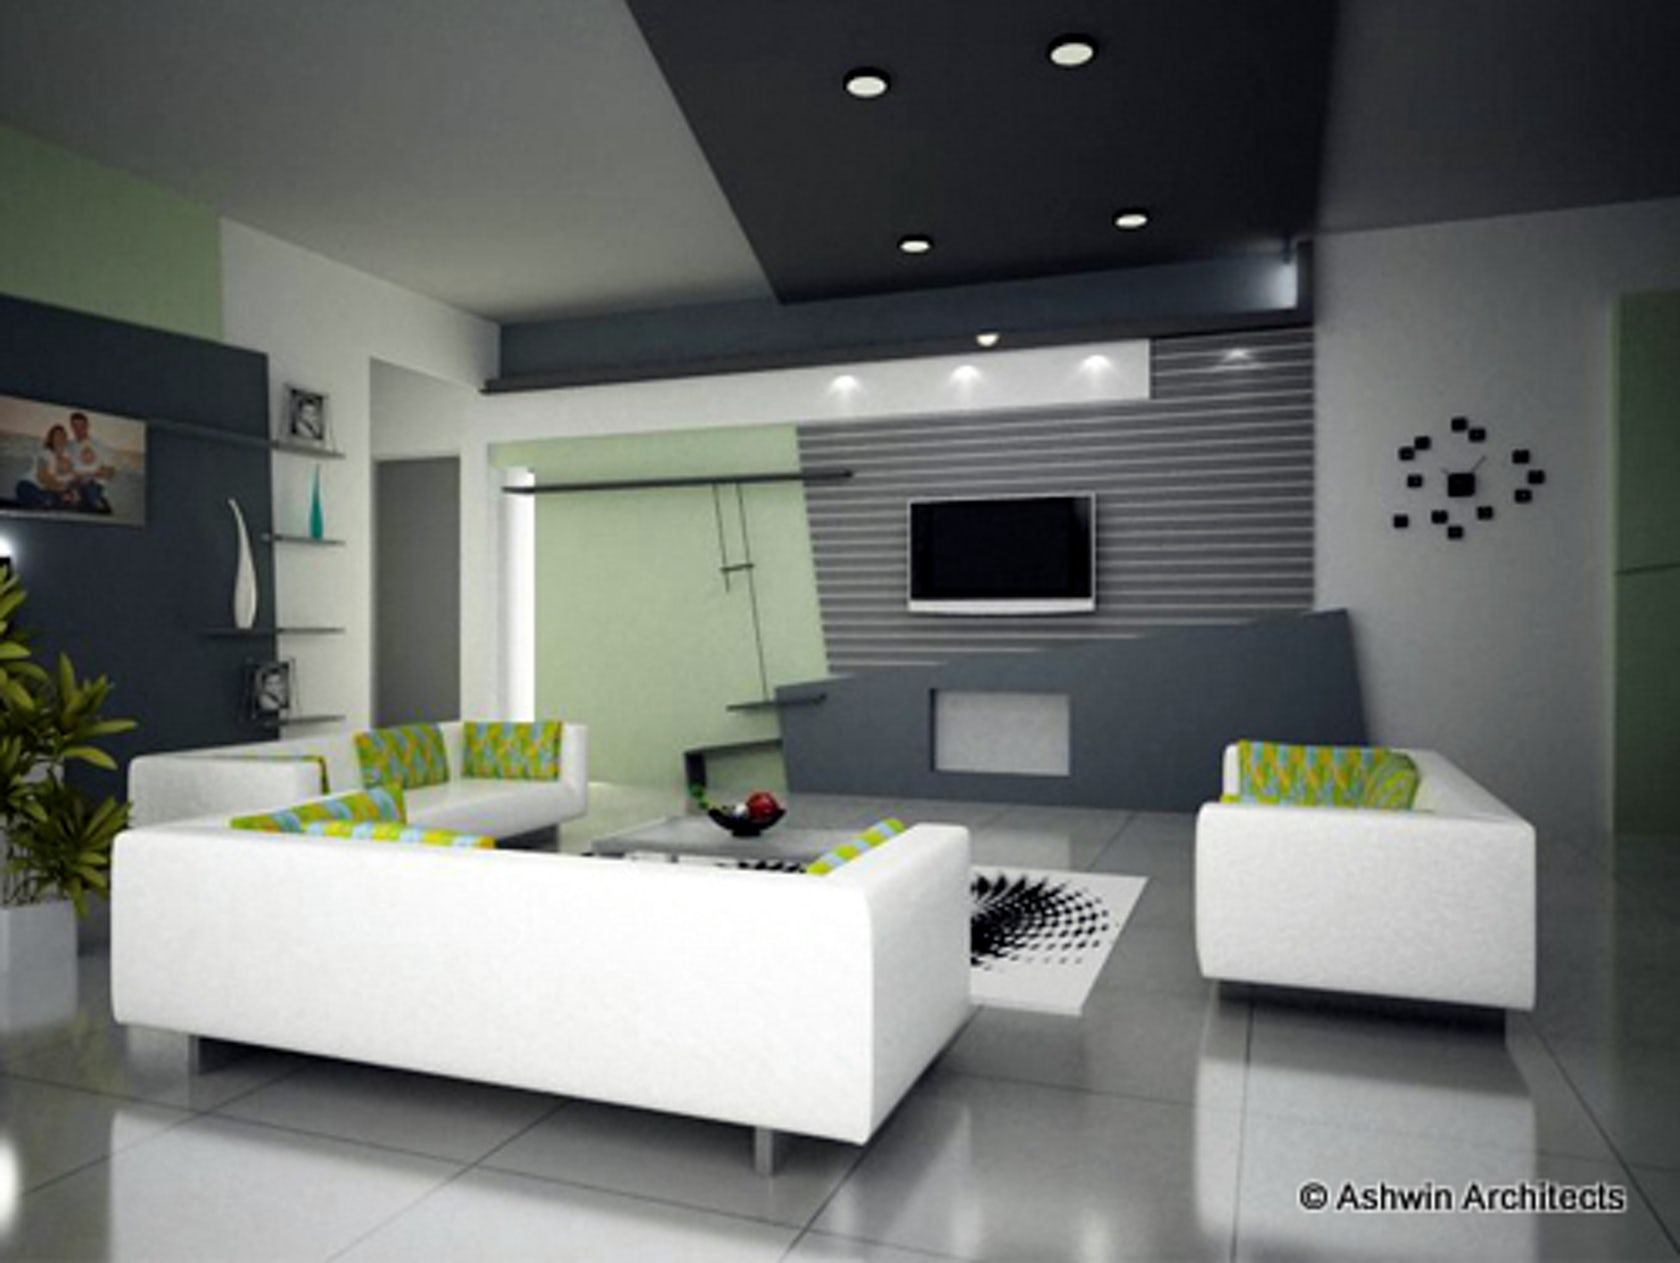 Interior design projects in bangalore dating. speed dating rochester ny for married people.